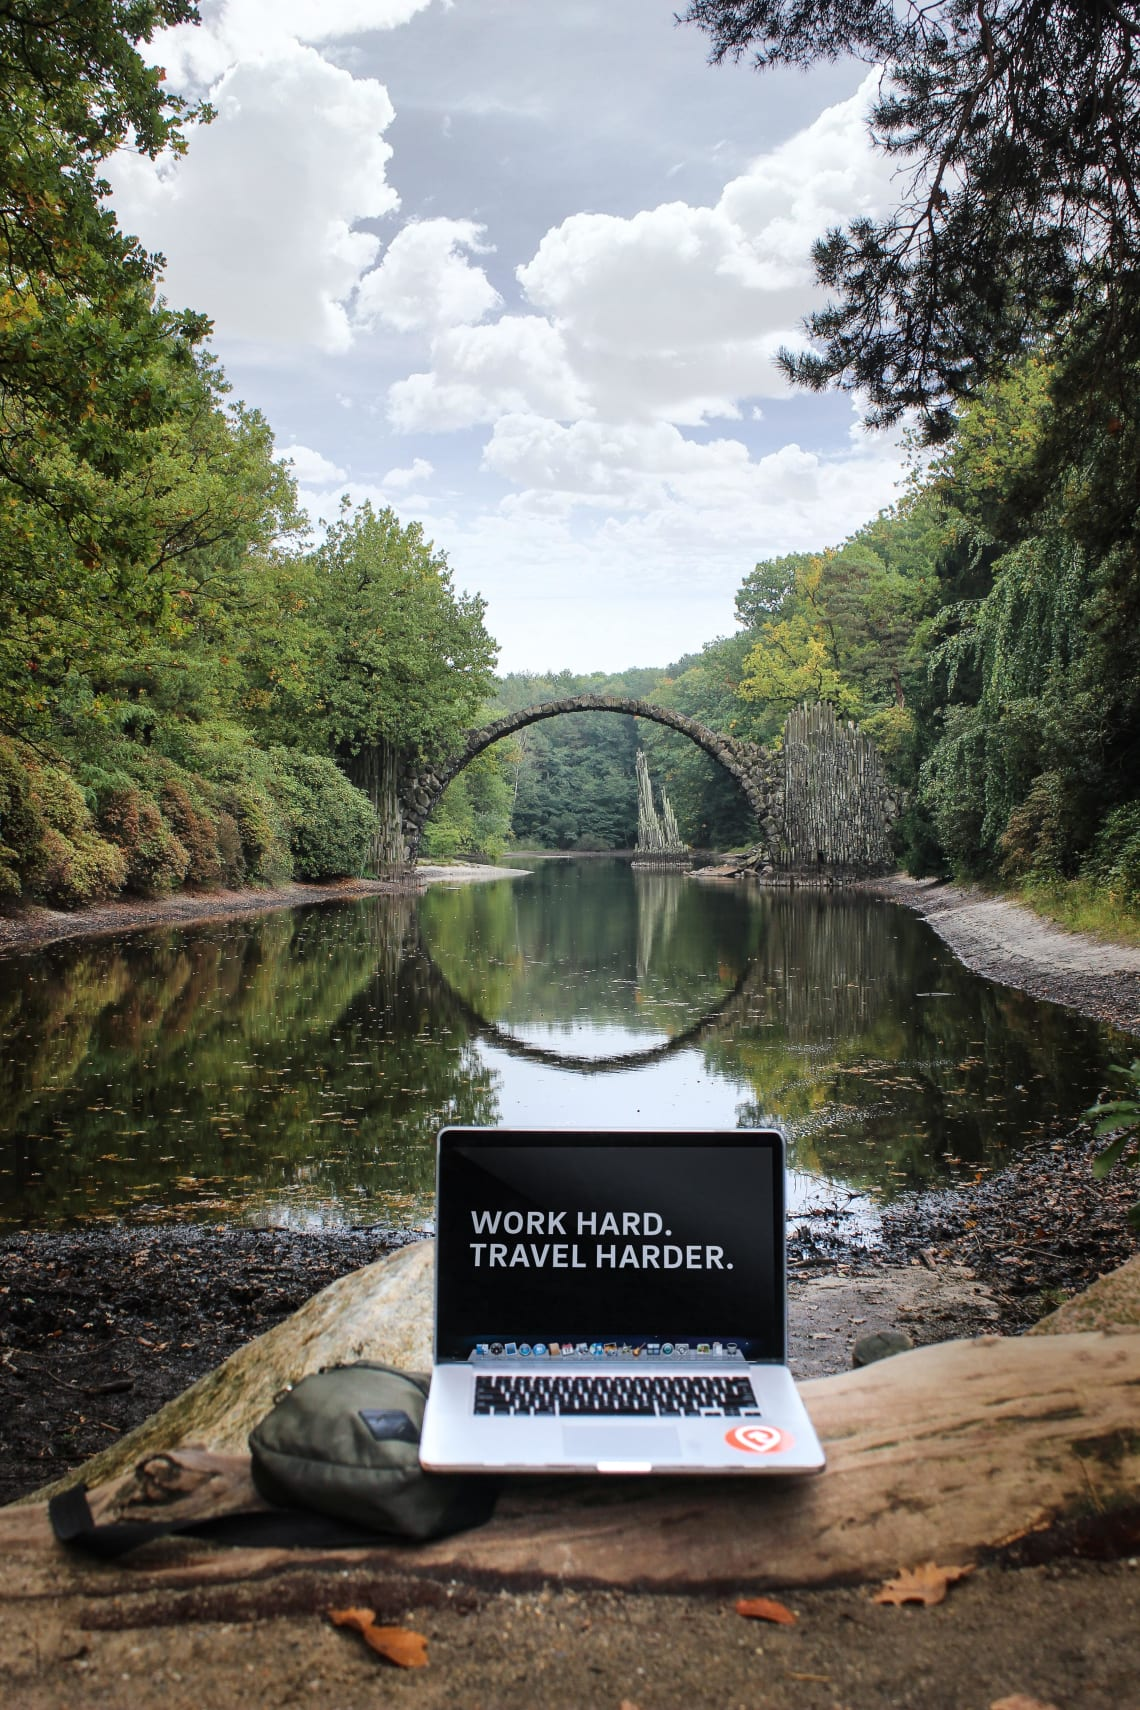 Amazing gap year ideas: become a digital nomad